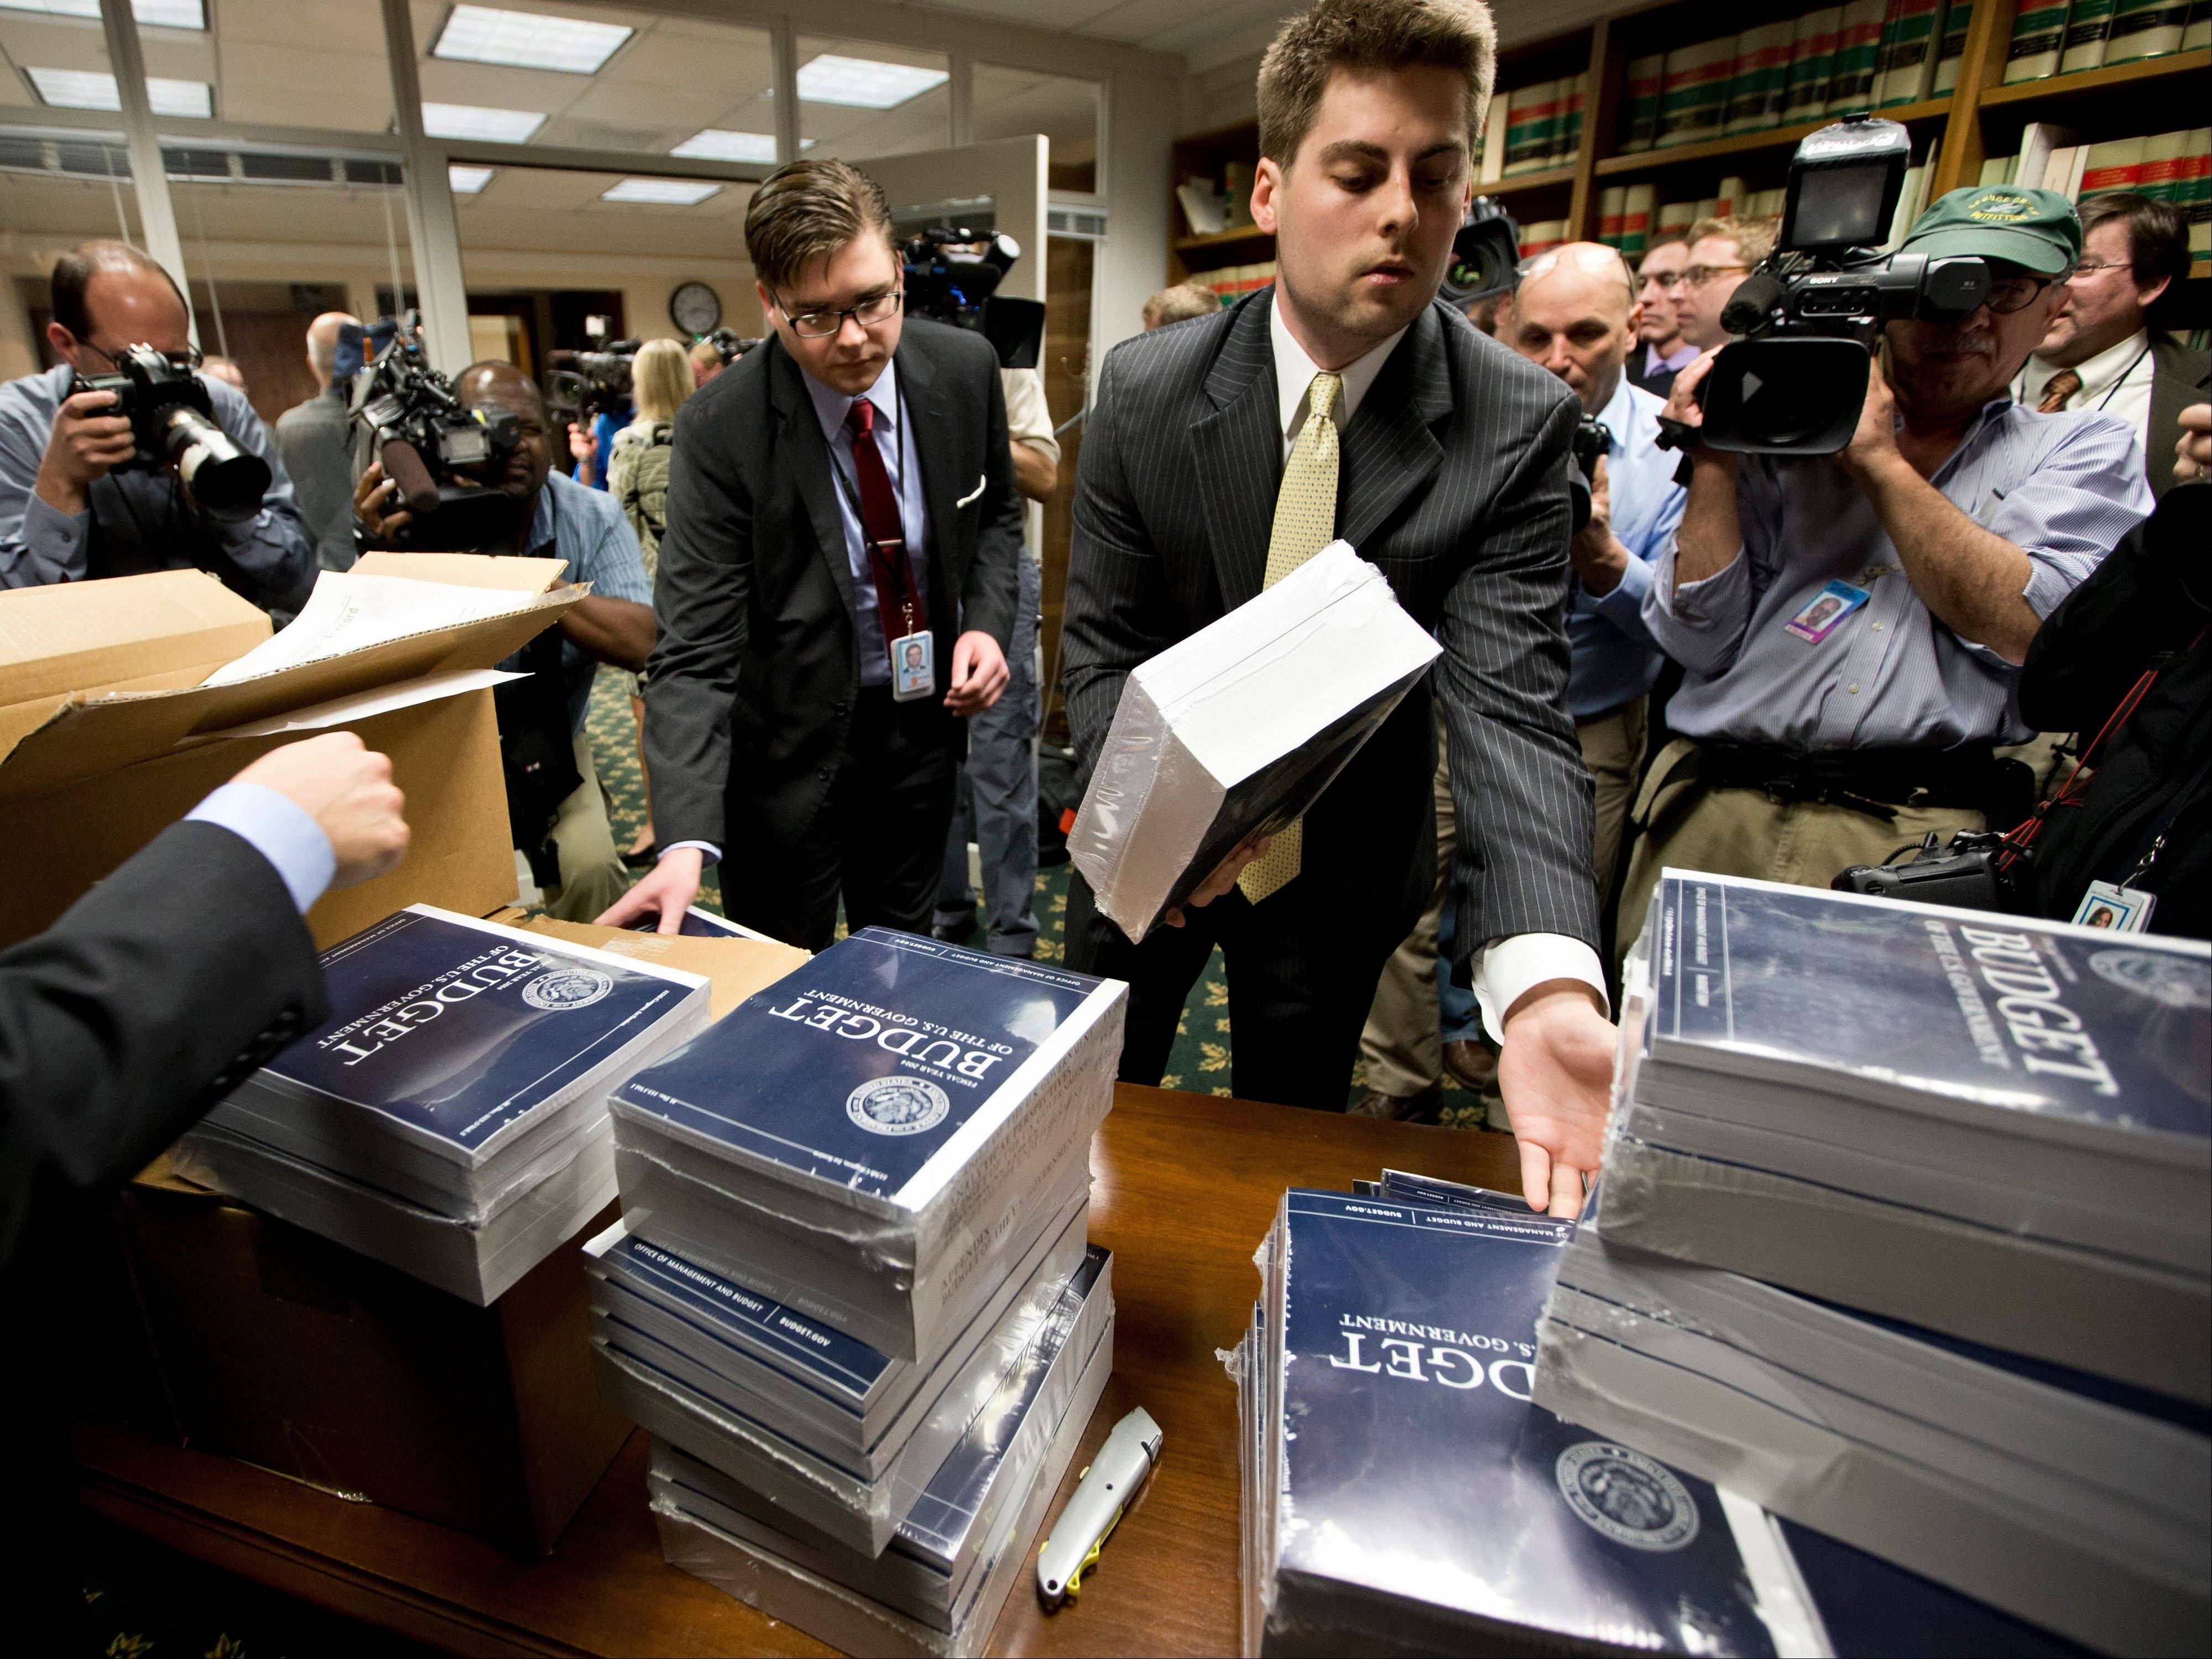 Copies of President Barack Obama's budget plan for fiscal year 2014 are distributed to Senate staff on Capitol Hill Wednesday.